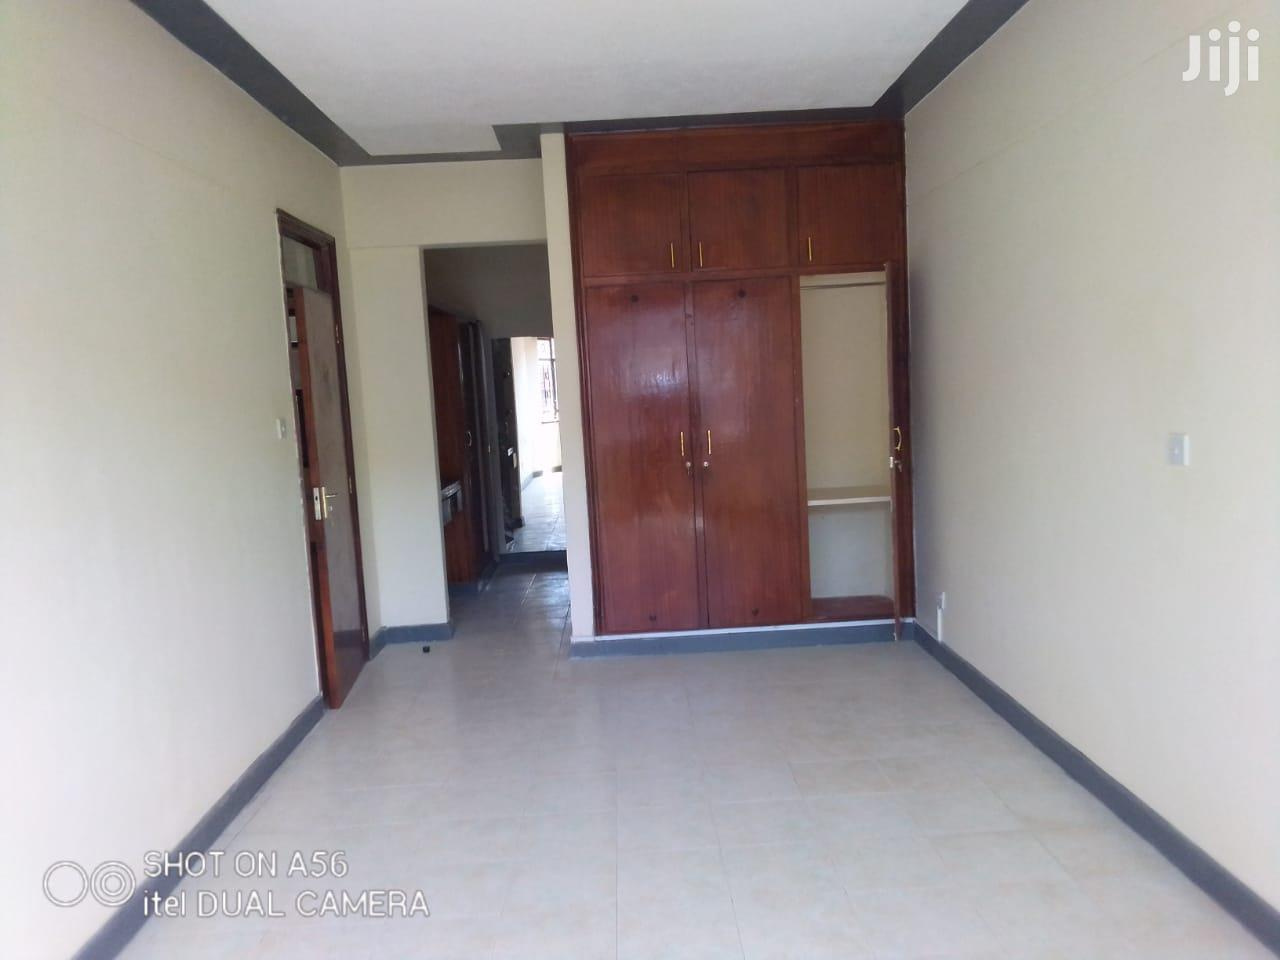 4 Bedrooms Westland for RENT | Houses & Apartments For Rent for sale in Lakeview Estate, Westlands, Kenya